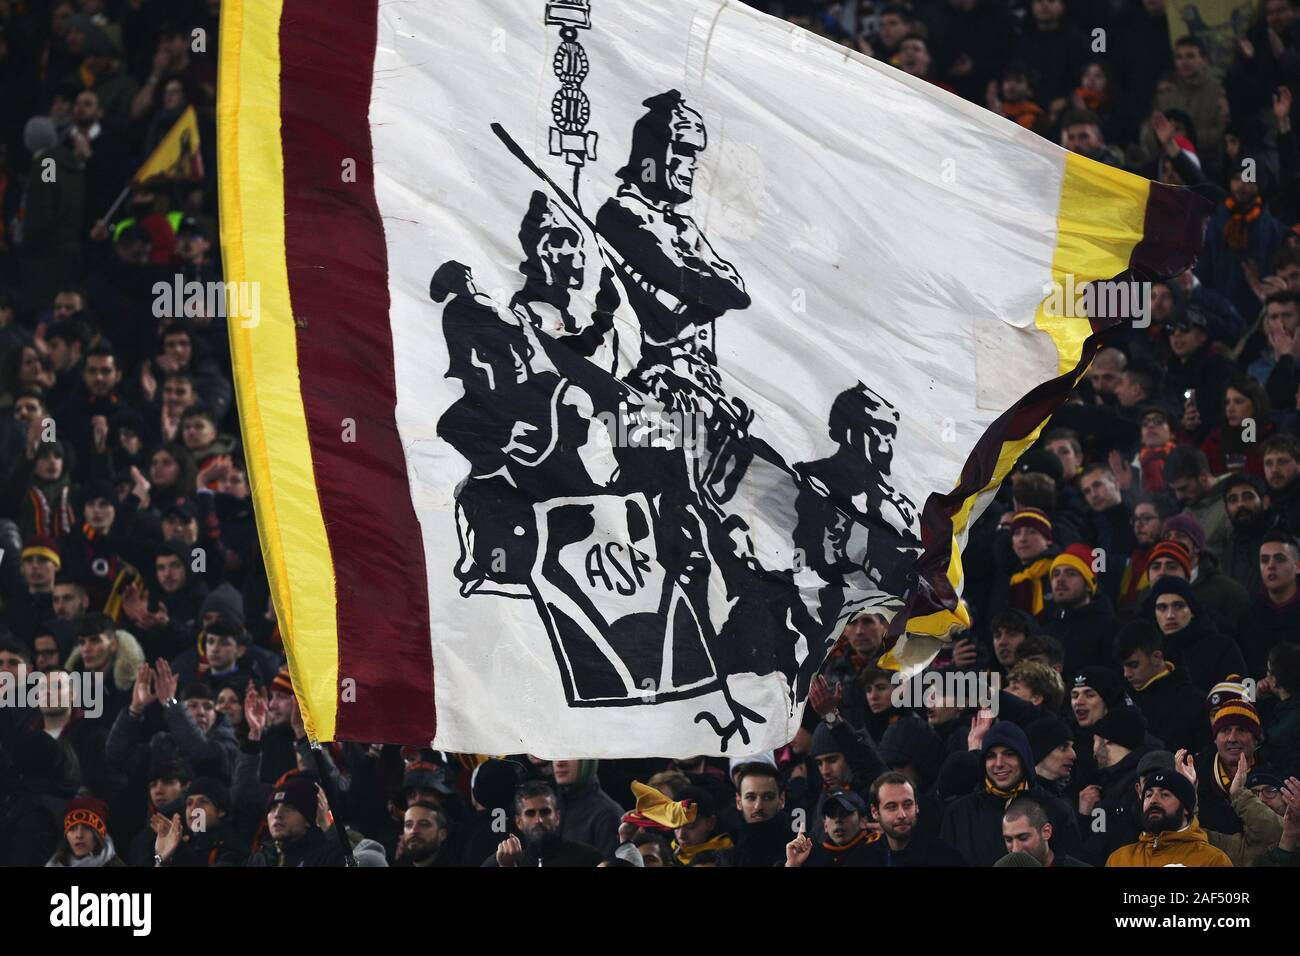 Supporters of Roma show a flag during the UEFA Europa League, Group J football match between AS Roma and Wolfsberg AC on December 12, 2019 at Stadio Olimpico in Rome, Italy - Photo Federico Proietti/ESPA-Images Stock Photo